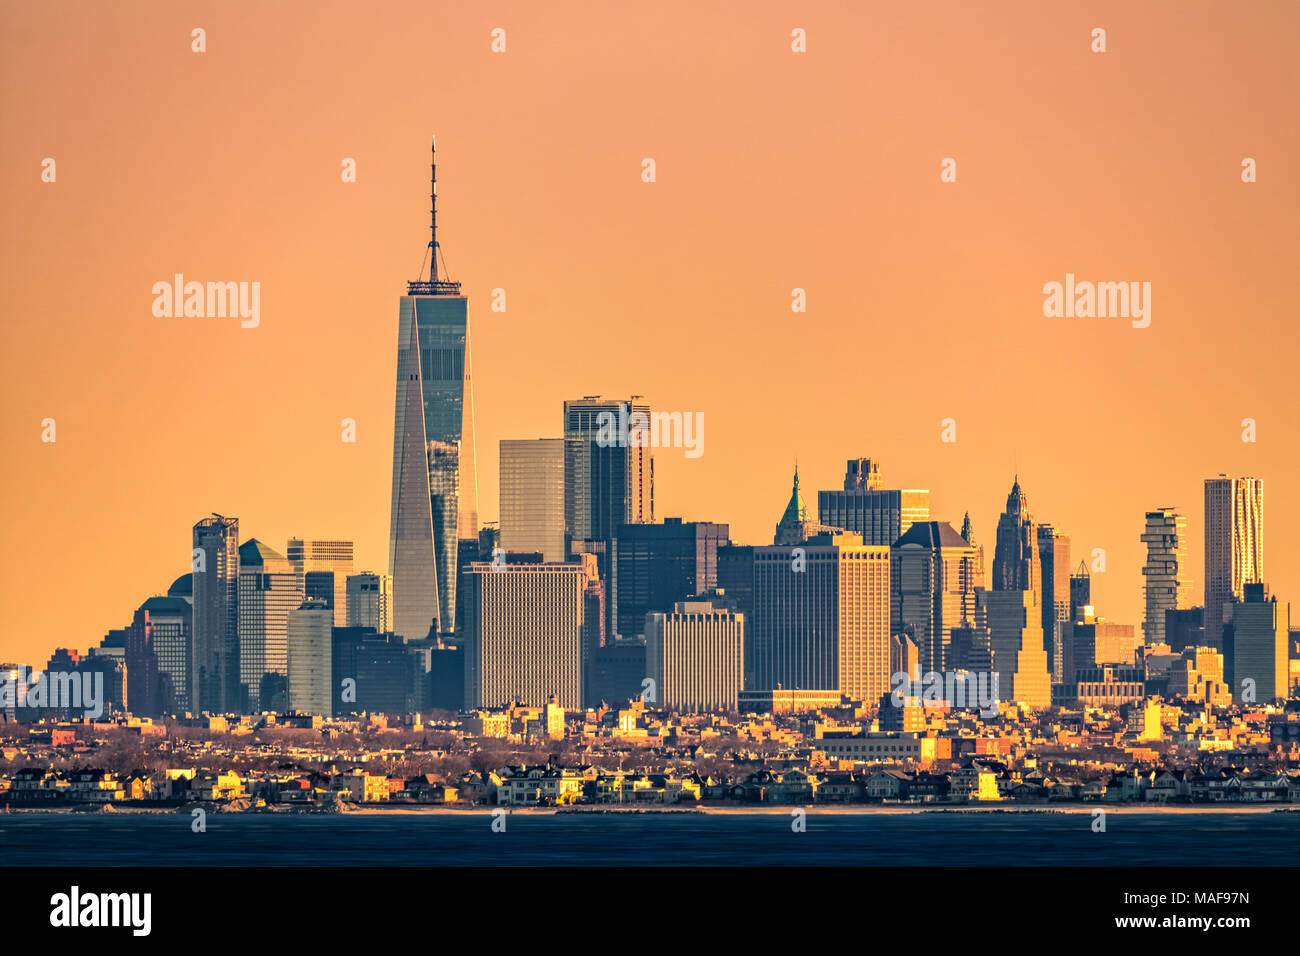 New York highrise skyline with lowrise Brooklyn borough in the foreground, as viewed at sunrise, from Sandy Hook, NJ. - Stock Image